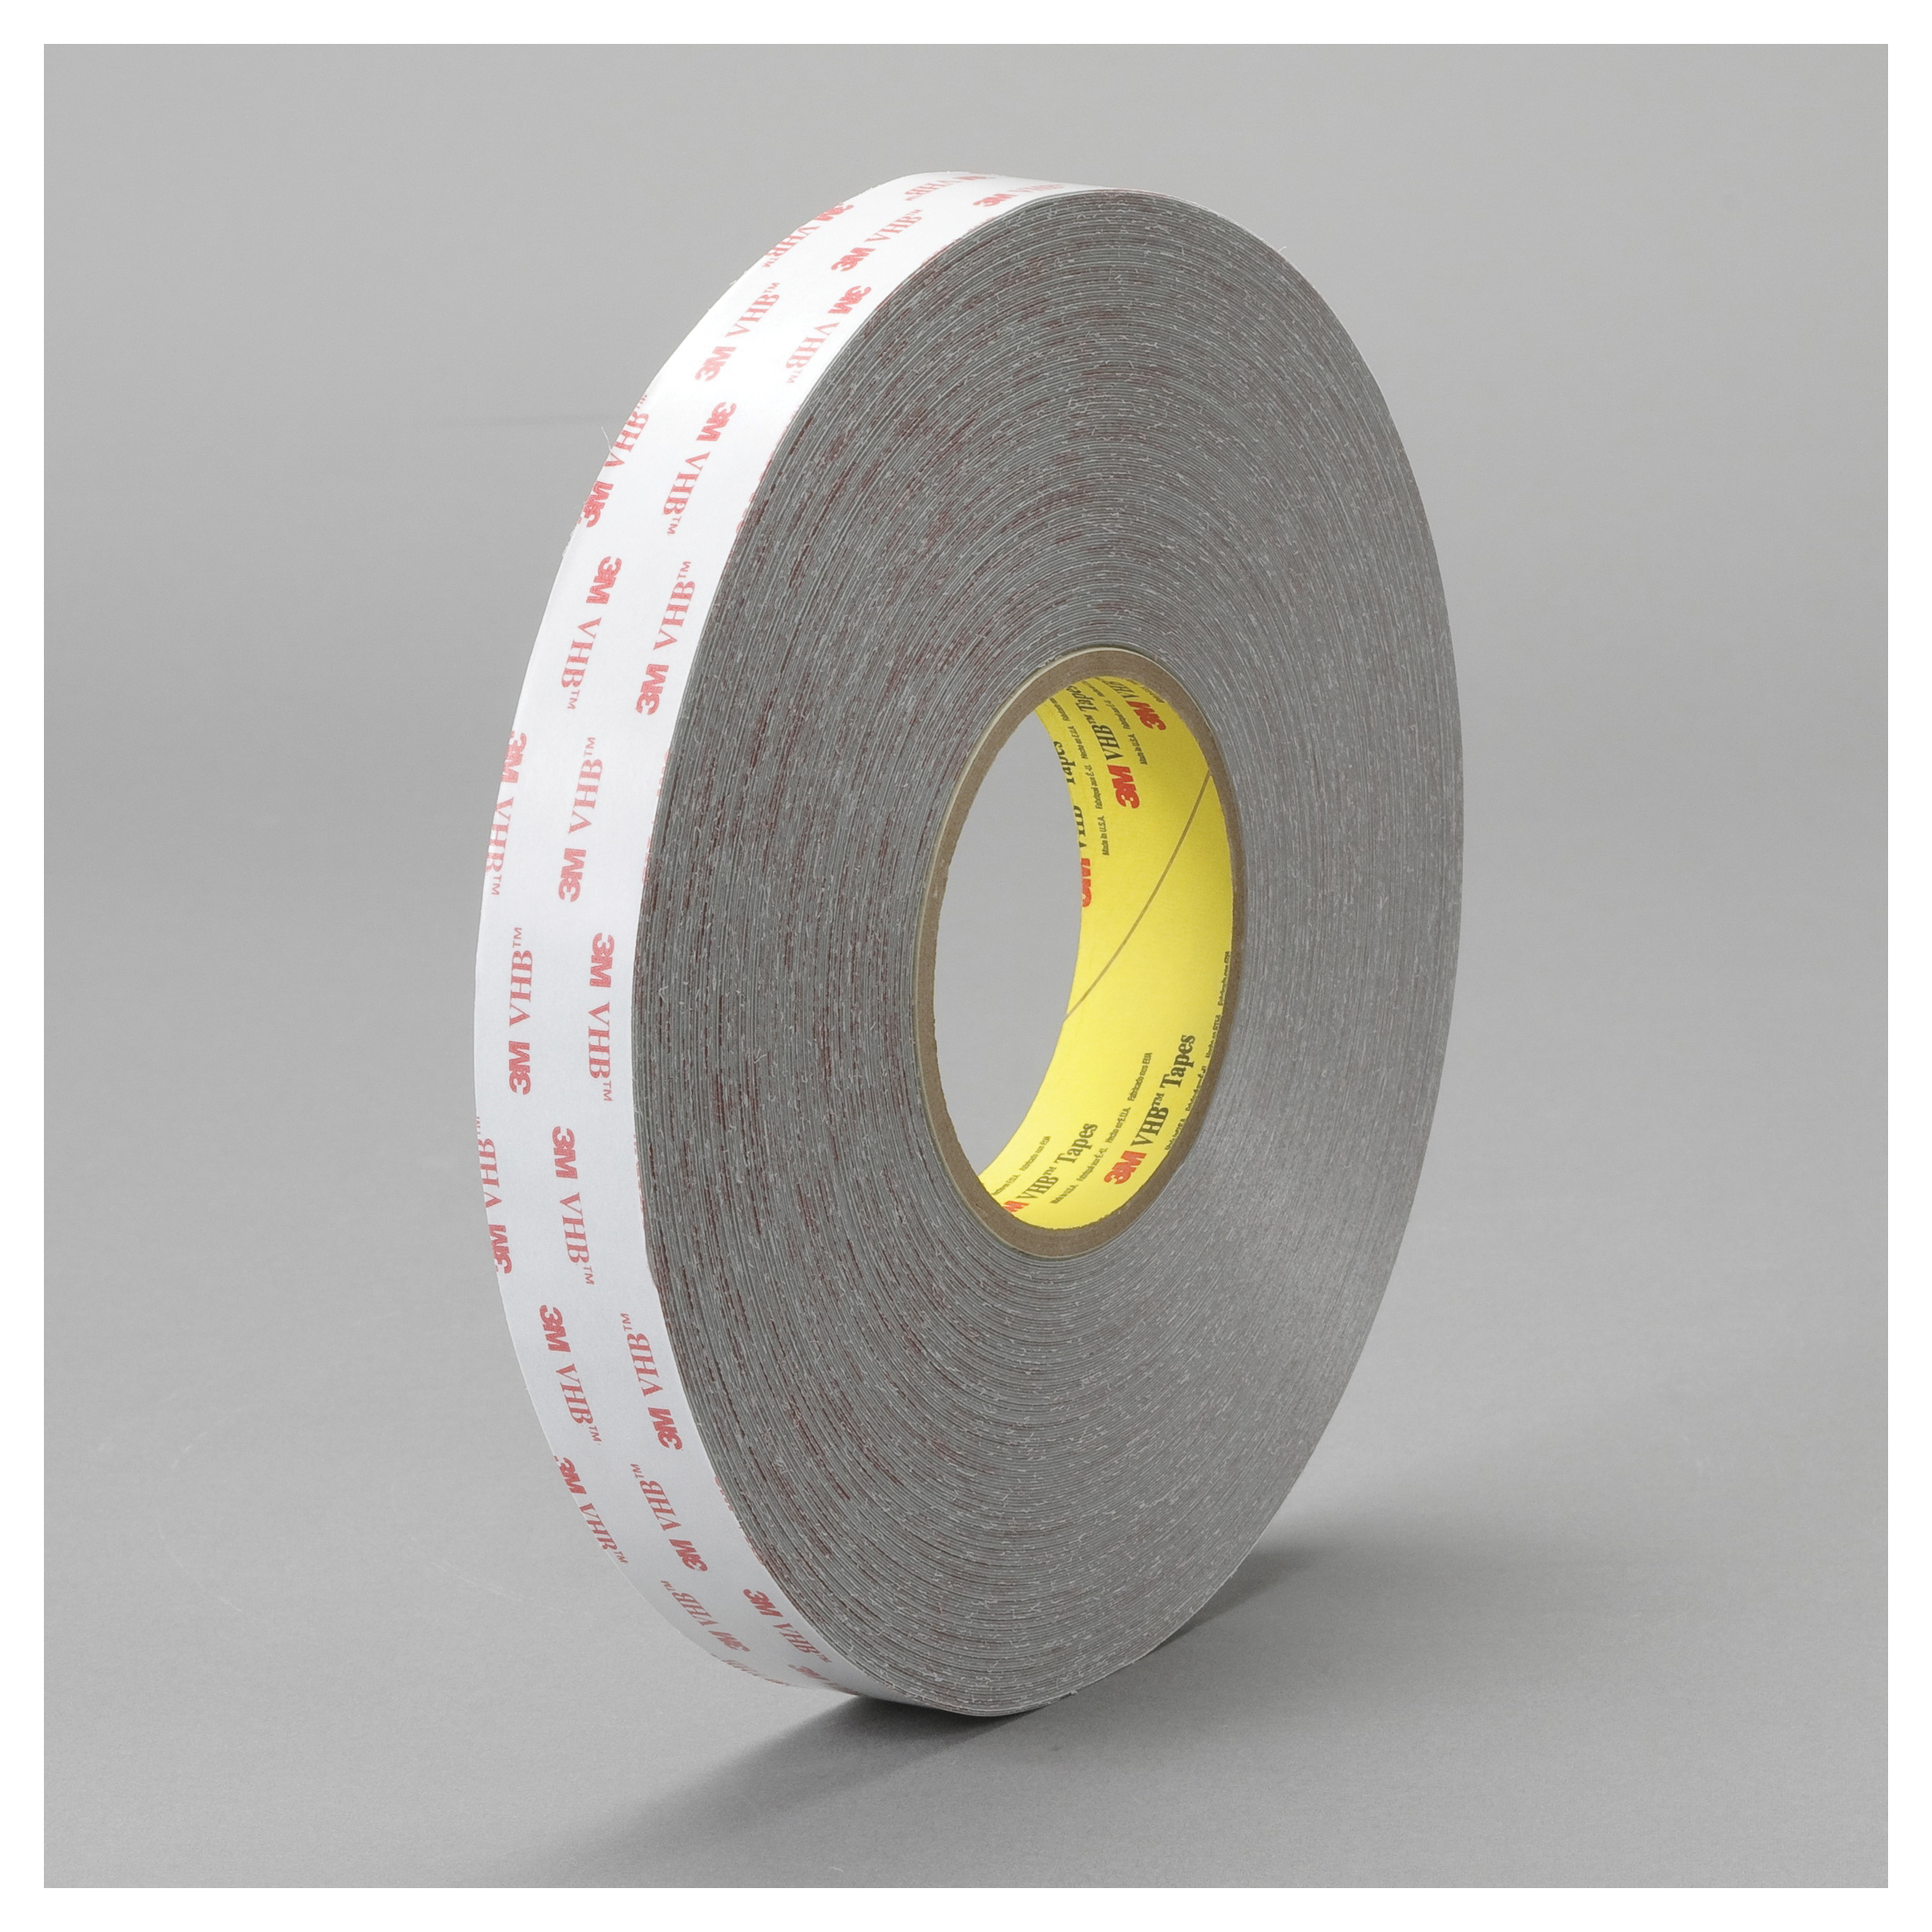 3M™ VHB™ 021200-24387 Pressure Sensitive Double Sided Bonding Tape, 72 yd L x 3/4 in W, 0.015 in THK, Multi-Purpose Acrylic Adhesive, Acrylic Foam Backing, Gray